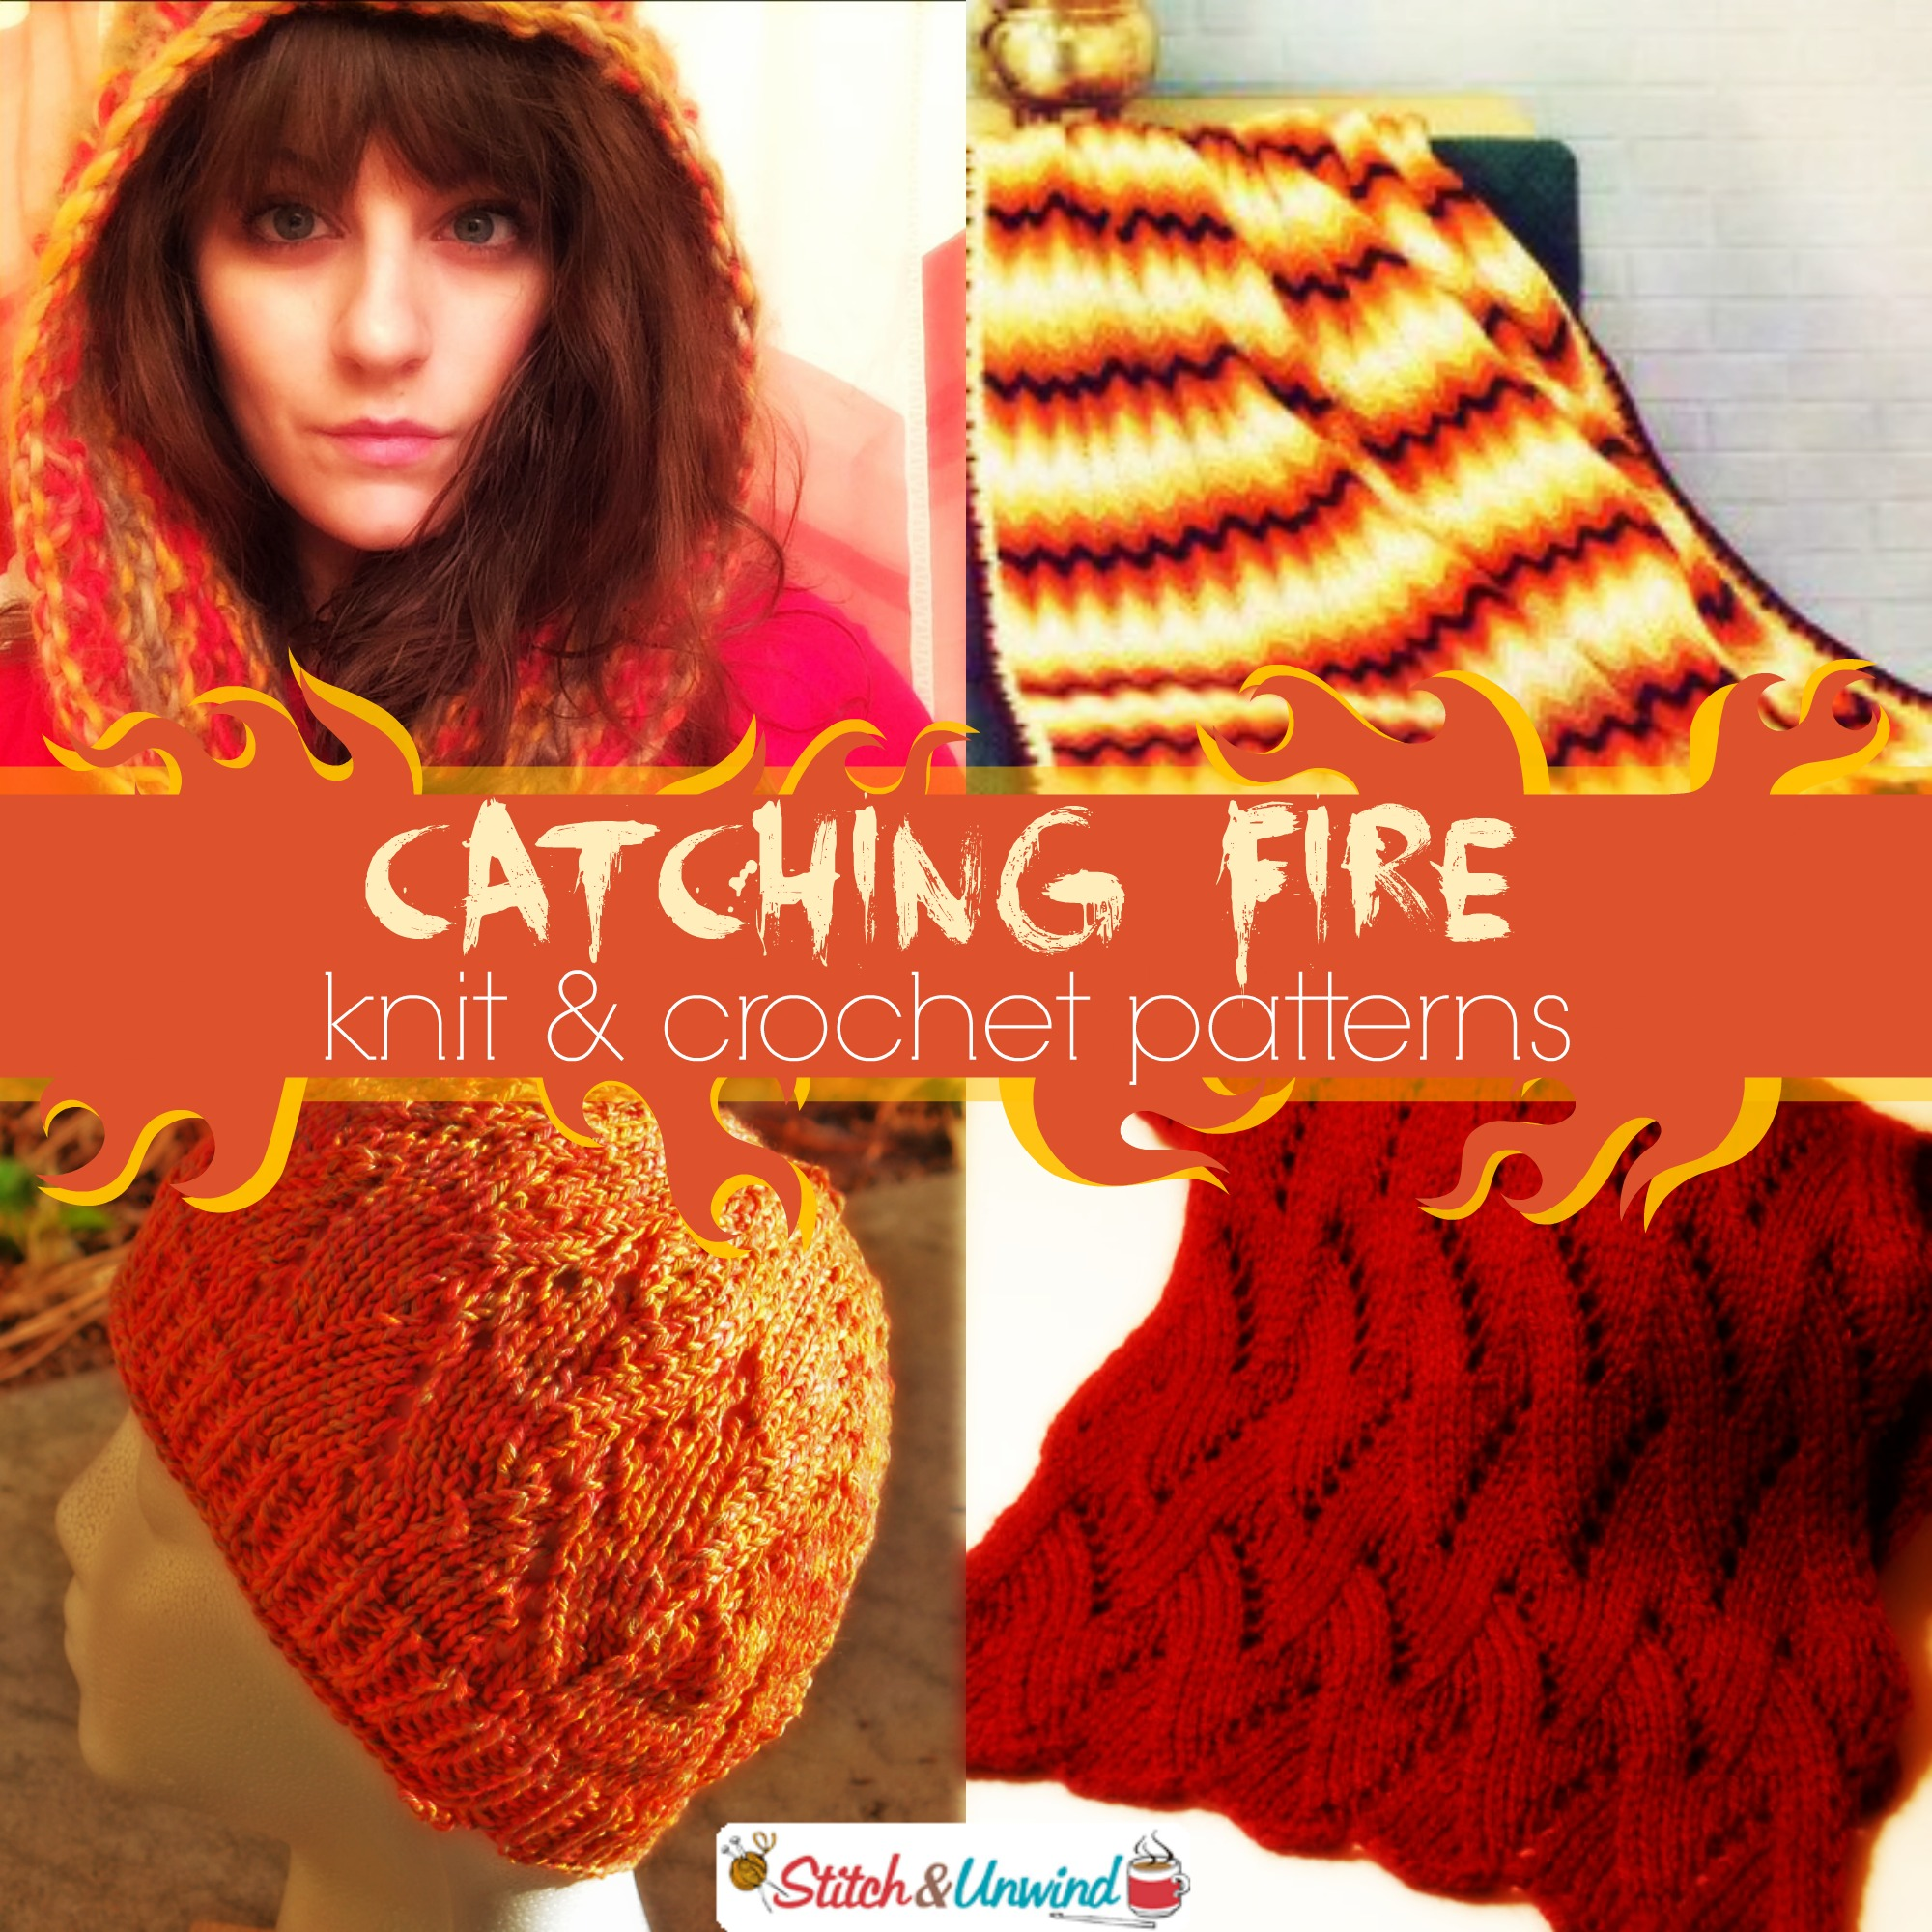 Catching Fire Hot Knit Crochet Patterns Hunger Games Stitch